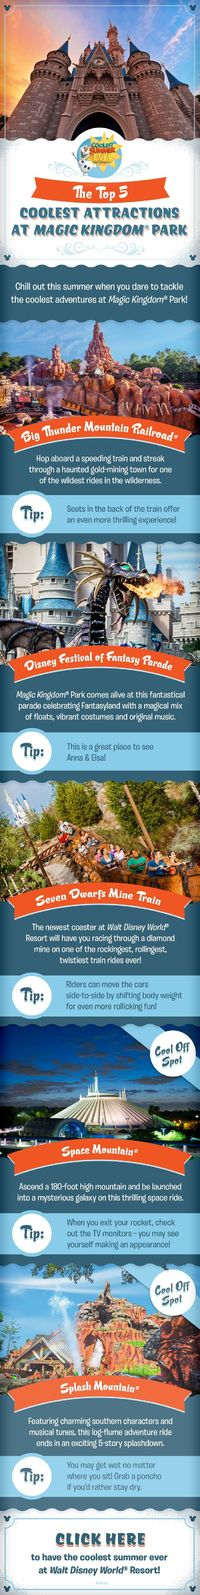 Check out the Top 5 Coolest Attractions at Magic Kingdom Park and get ready to have the Coolest Summer Ever as you plan your family vacation at Walt Disney World! Whether you are craving thrills on Big Thunder Mountain Railroad or Space Mountain, looking ...